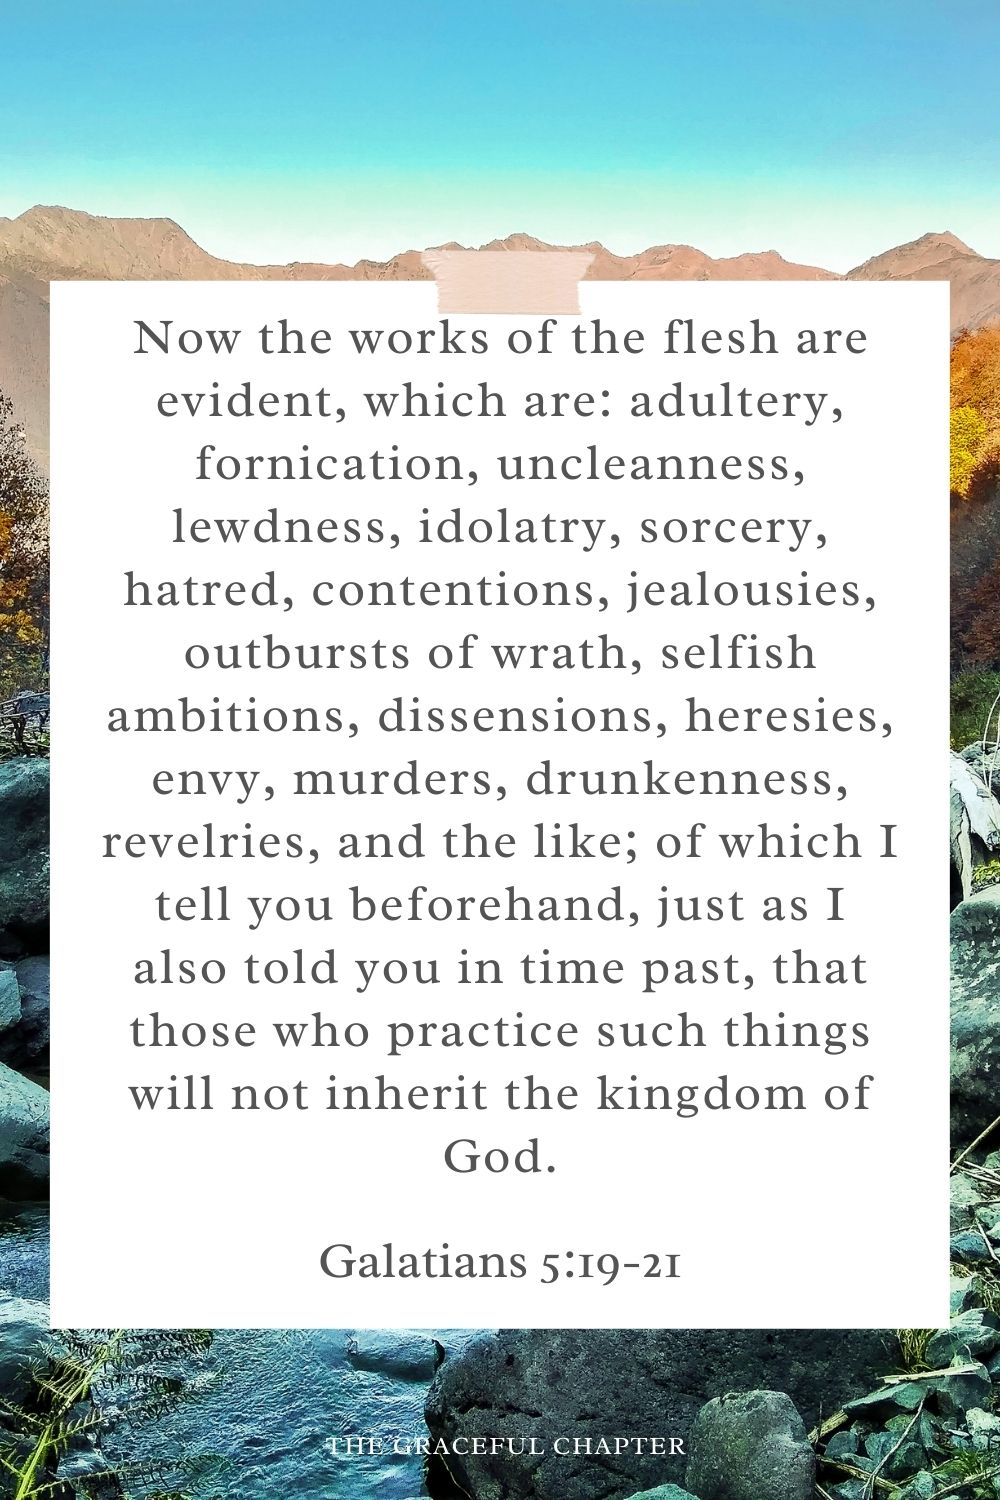 Now the works of the flesh are evident, which are: adultery, fornication, uncleanness, lewdness, idolatry, sorcery, hatred, contentions, jealousies, outbursts of wrath, selfish ambitions, dissensions, heresies, envy, murders, drunkenness, revelries, and the like; of which I tell you beforehand, just as I also told you in time past, that those who practice such things will not inherit the kingdom of God. Galatians 5:19-21